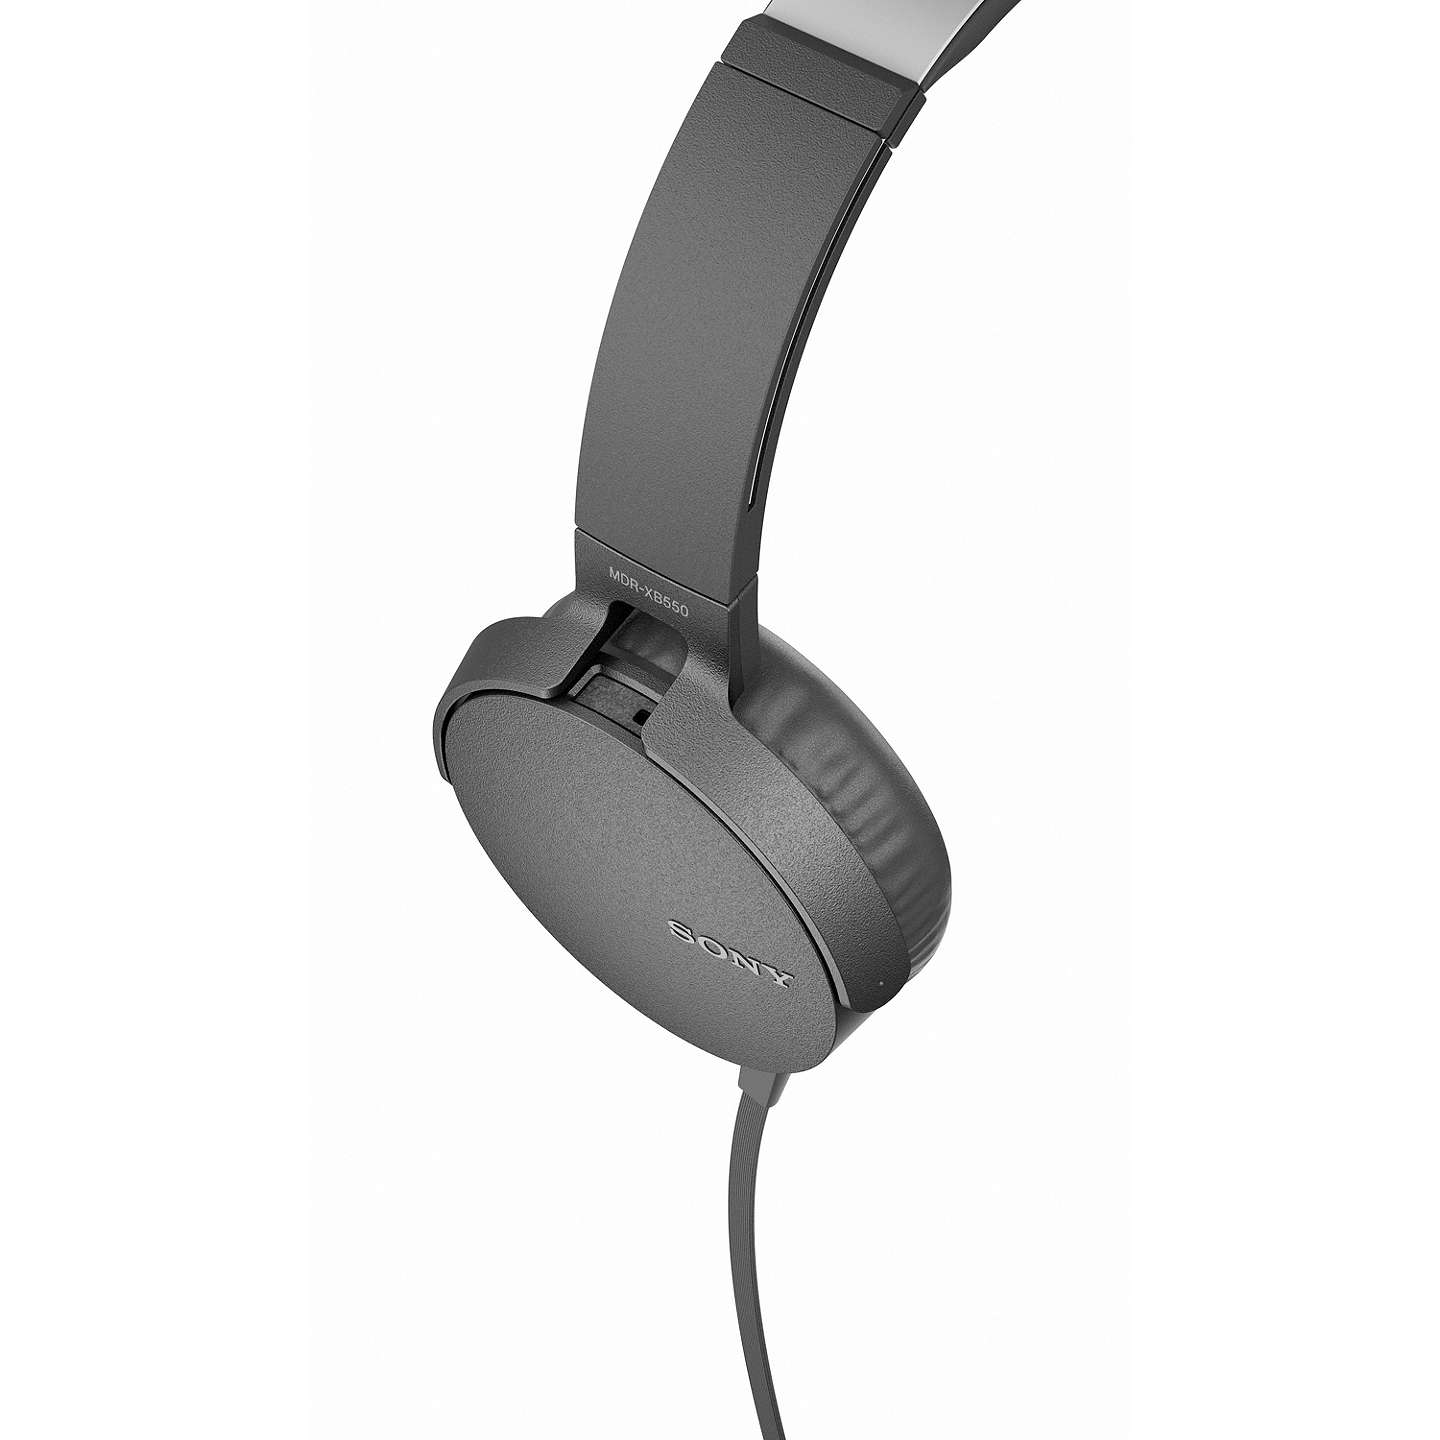 BuySony MDR-XB550AP Extra Bass On-Ear Headphones with Mic/Remote, Black Online at johnlewis.com